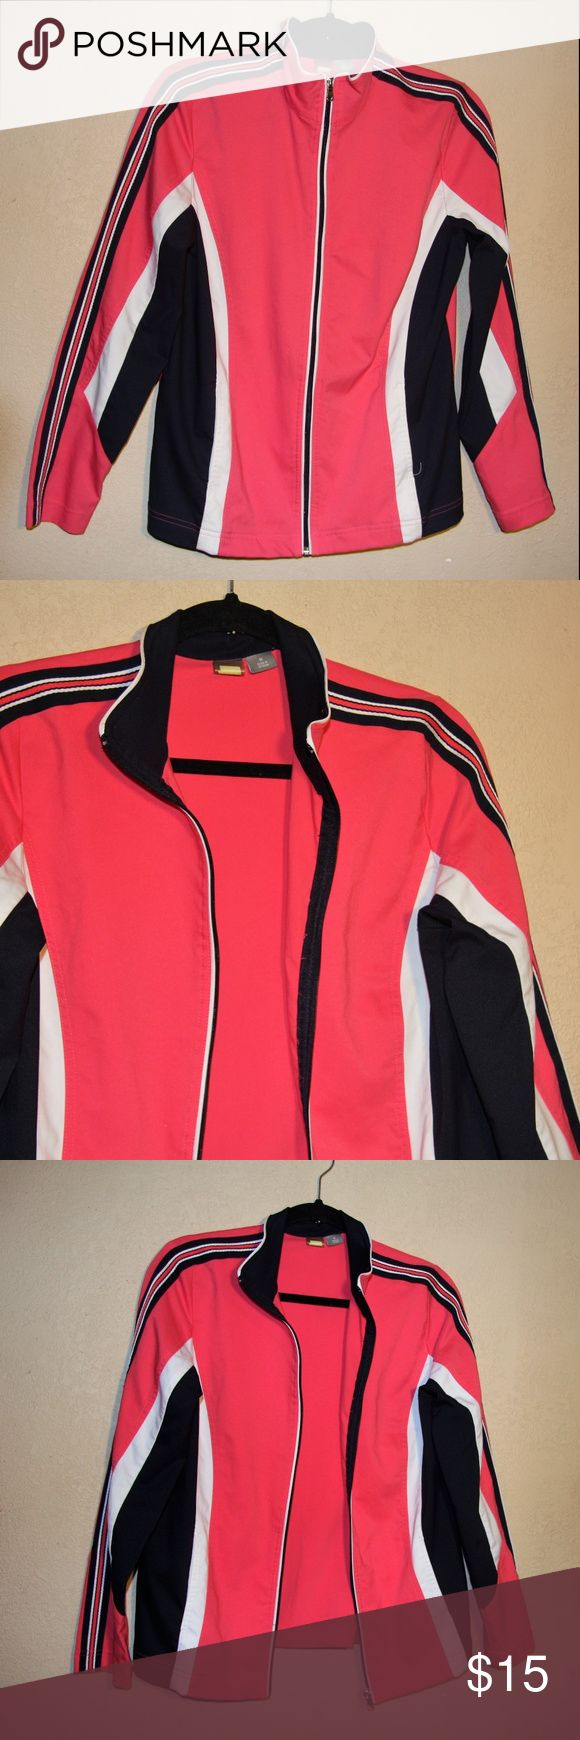 "SJB-Active -Sz-M-Athletic-Track-Wear Windbreaker SJB Active Women's M Full Zip Athletic Jacket. No rips or stains. EUC  MEASUREMENTS MEDIUM SIZE  Chest 20.5""- 41"" IF DOUBLED (WITHOUT CONSIDERING STRETCH)  Hot pink, navy blue and white  Zip up  long sleeve  2 front pockets  Has stretch Vintage Jackets & Coats"